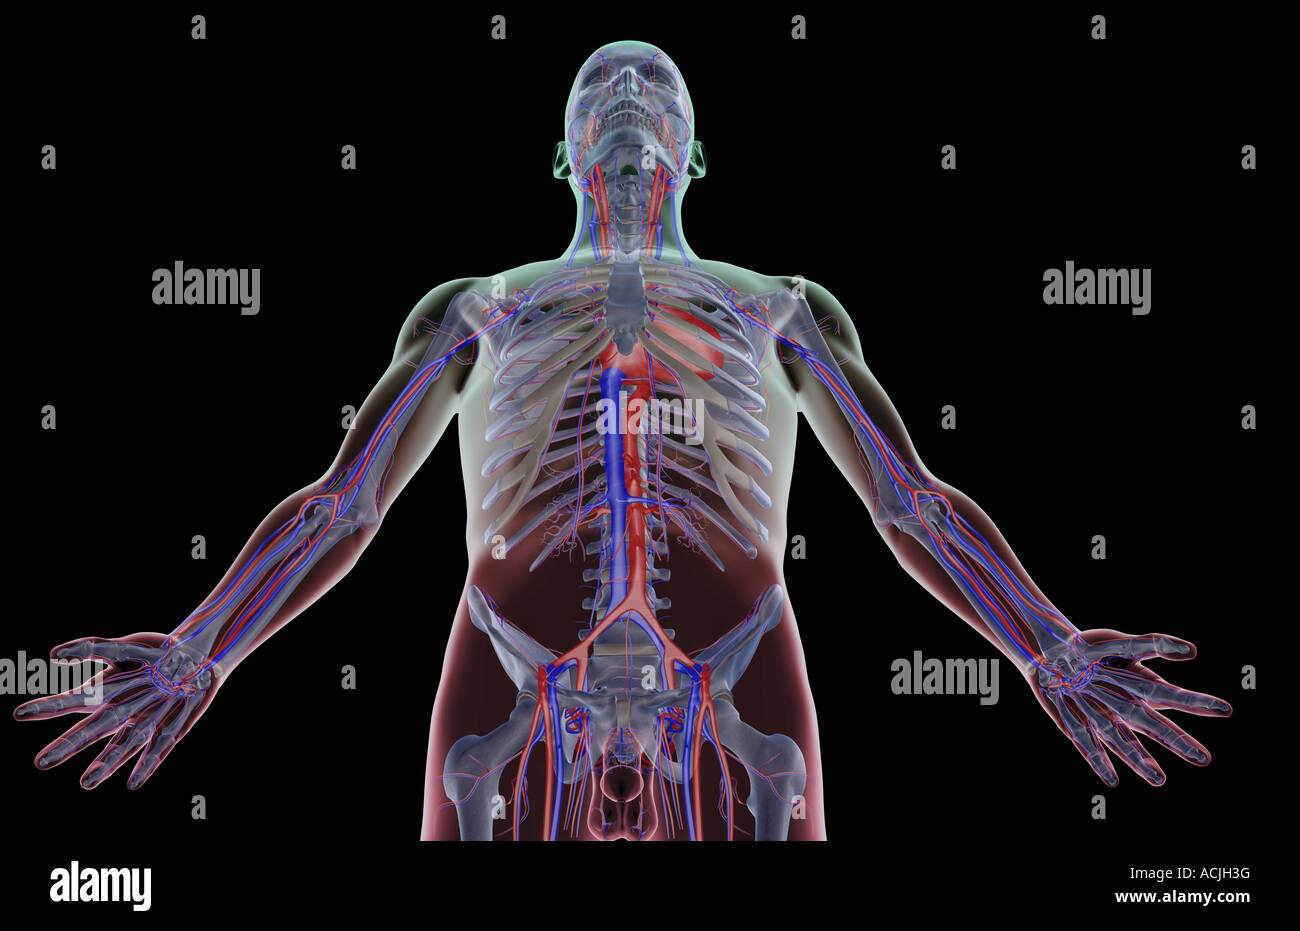 The Blood Supply Of The Upper Body Stock Photo 13170675 Alamy